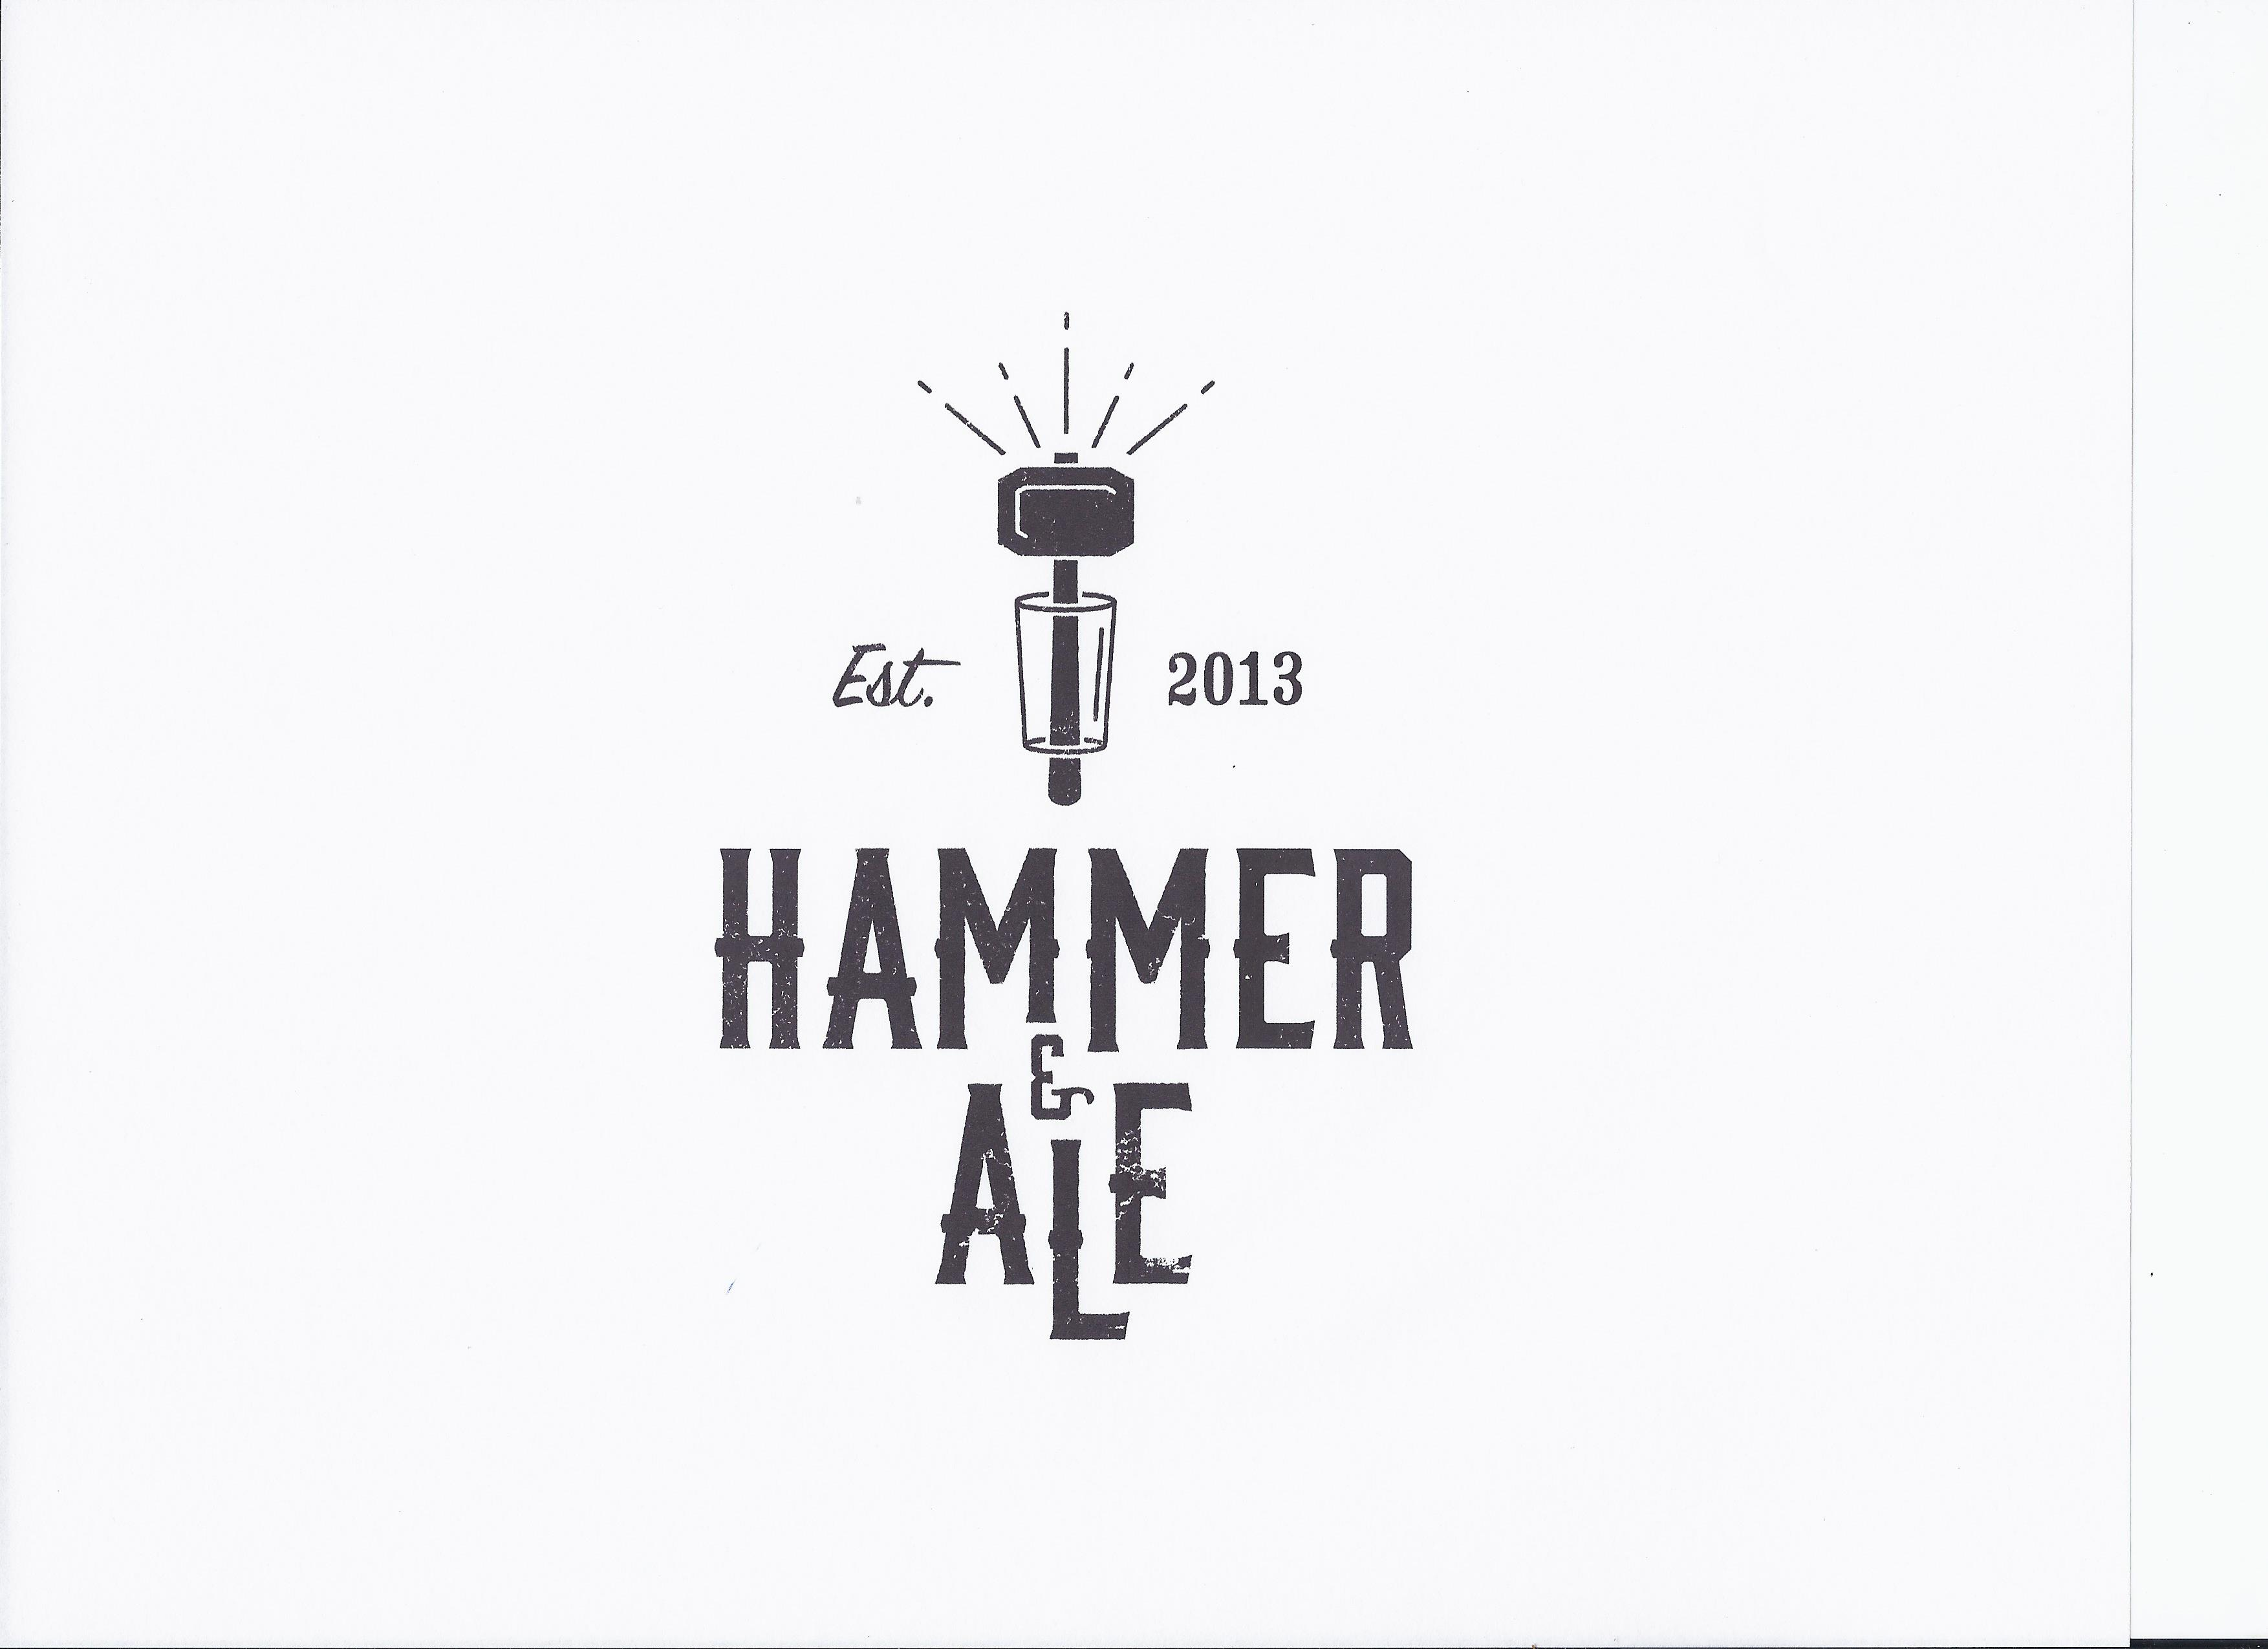 Hammer And Ale